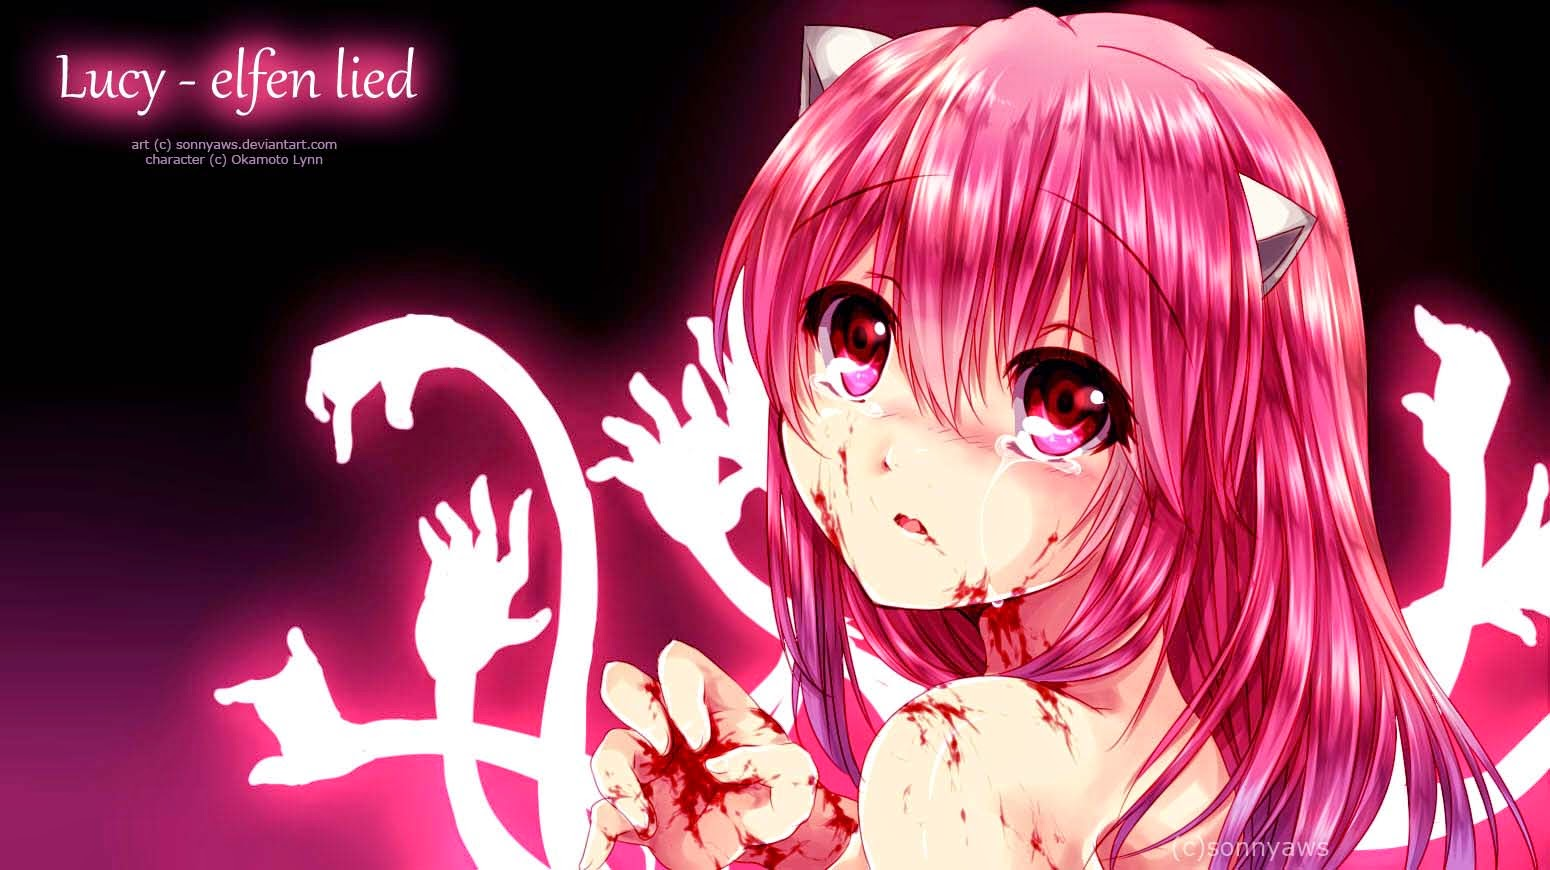 My Anime Review: August 2014